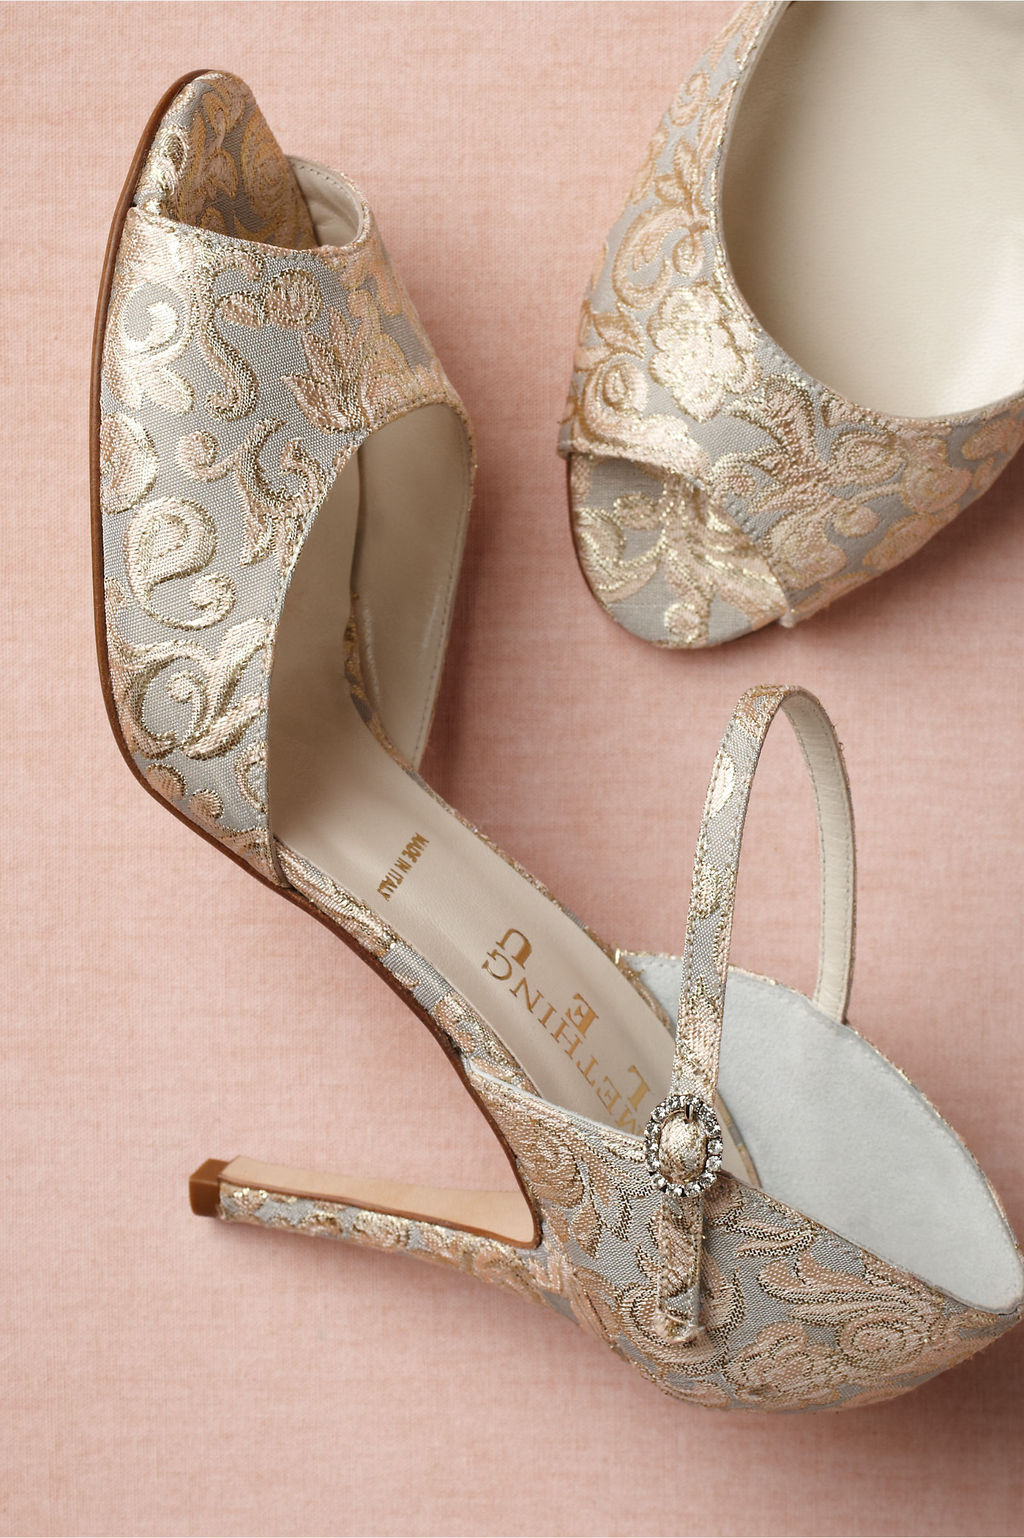 Retro Wedding Shoes from BHLDN elegant embroidered